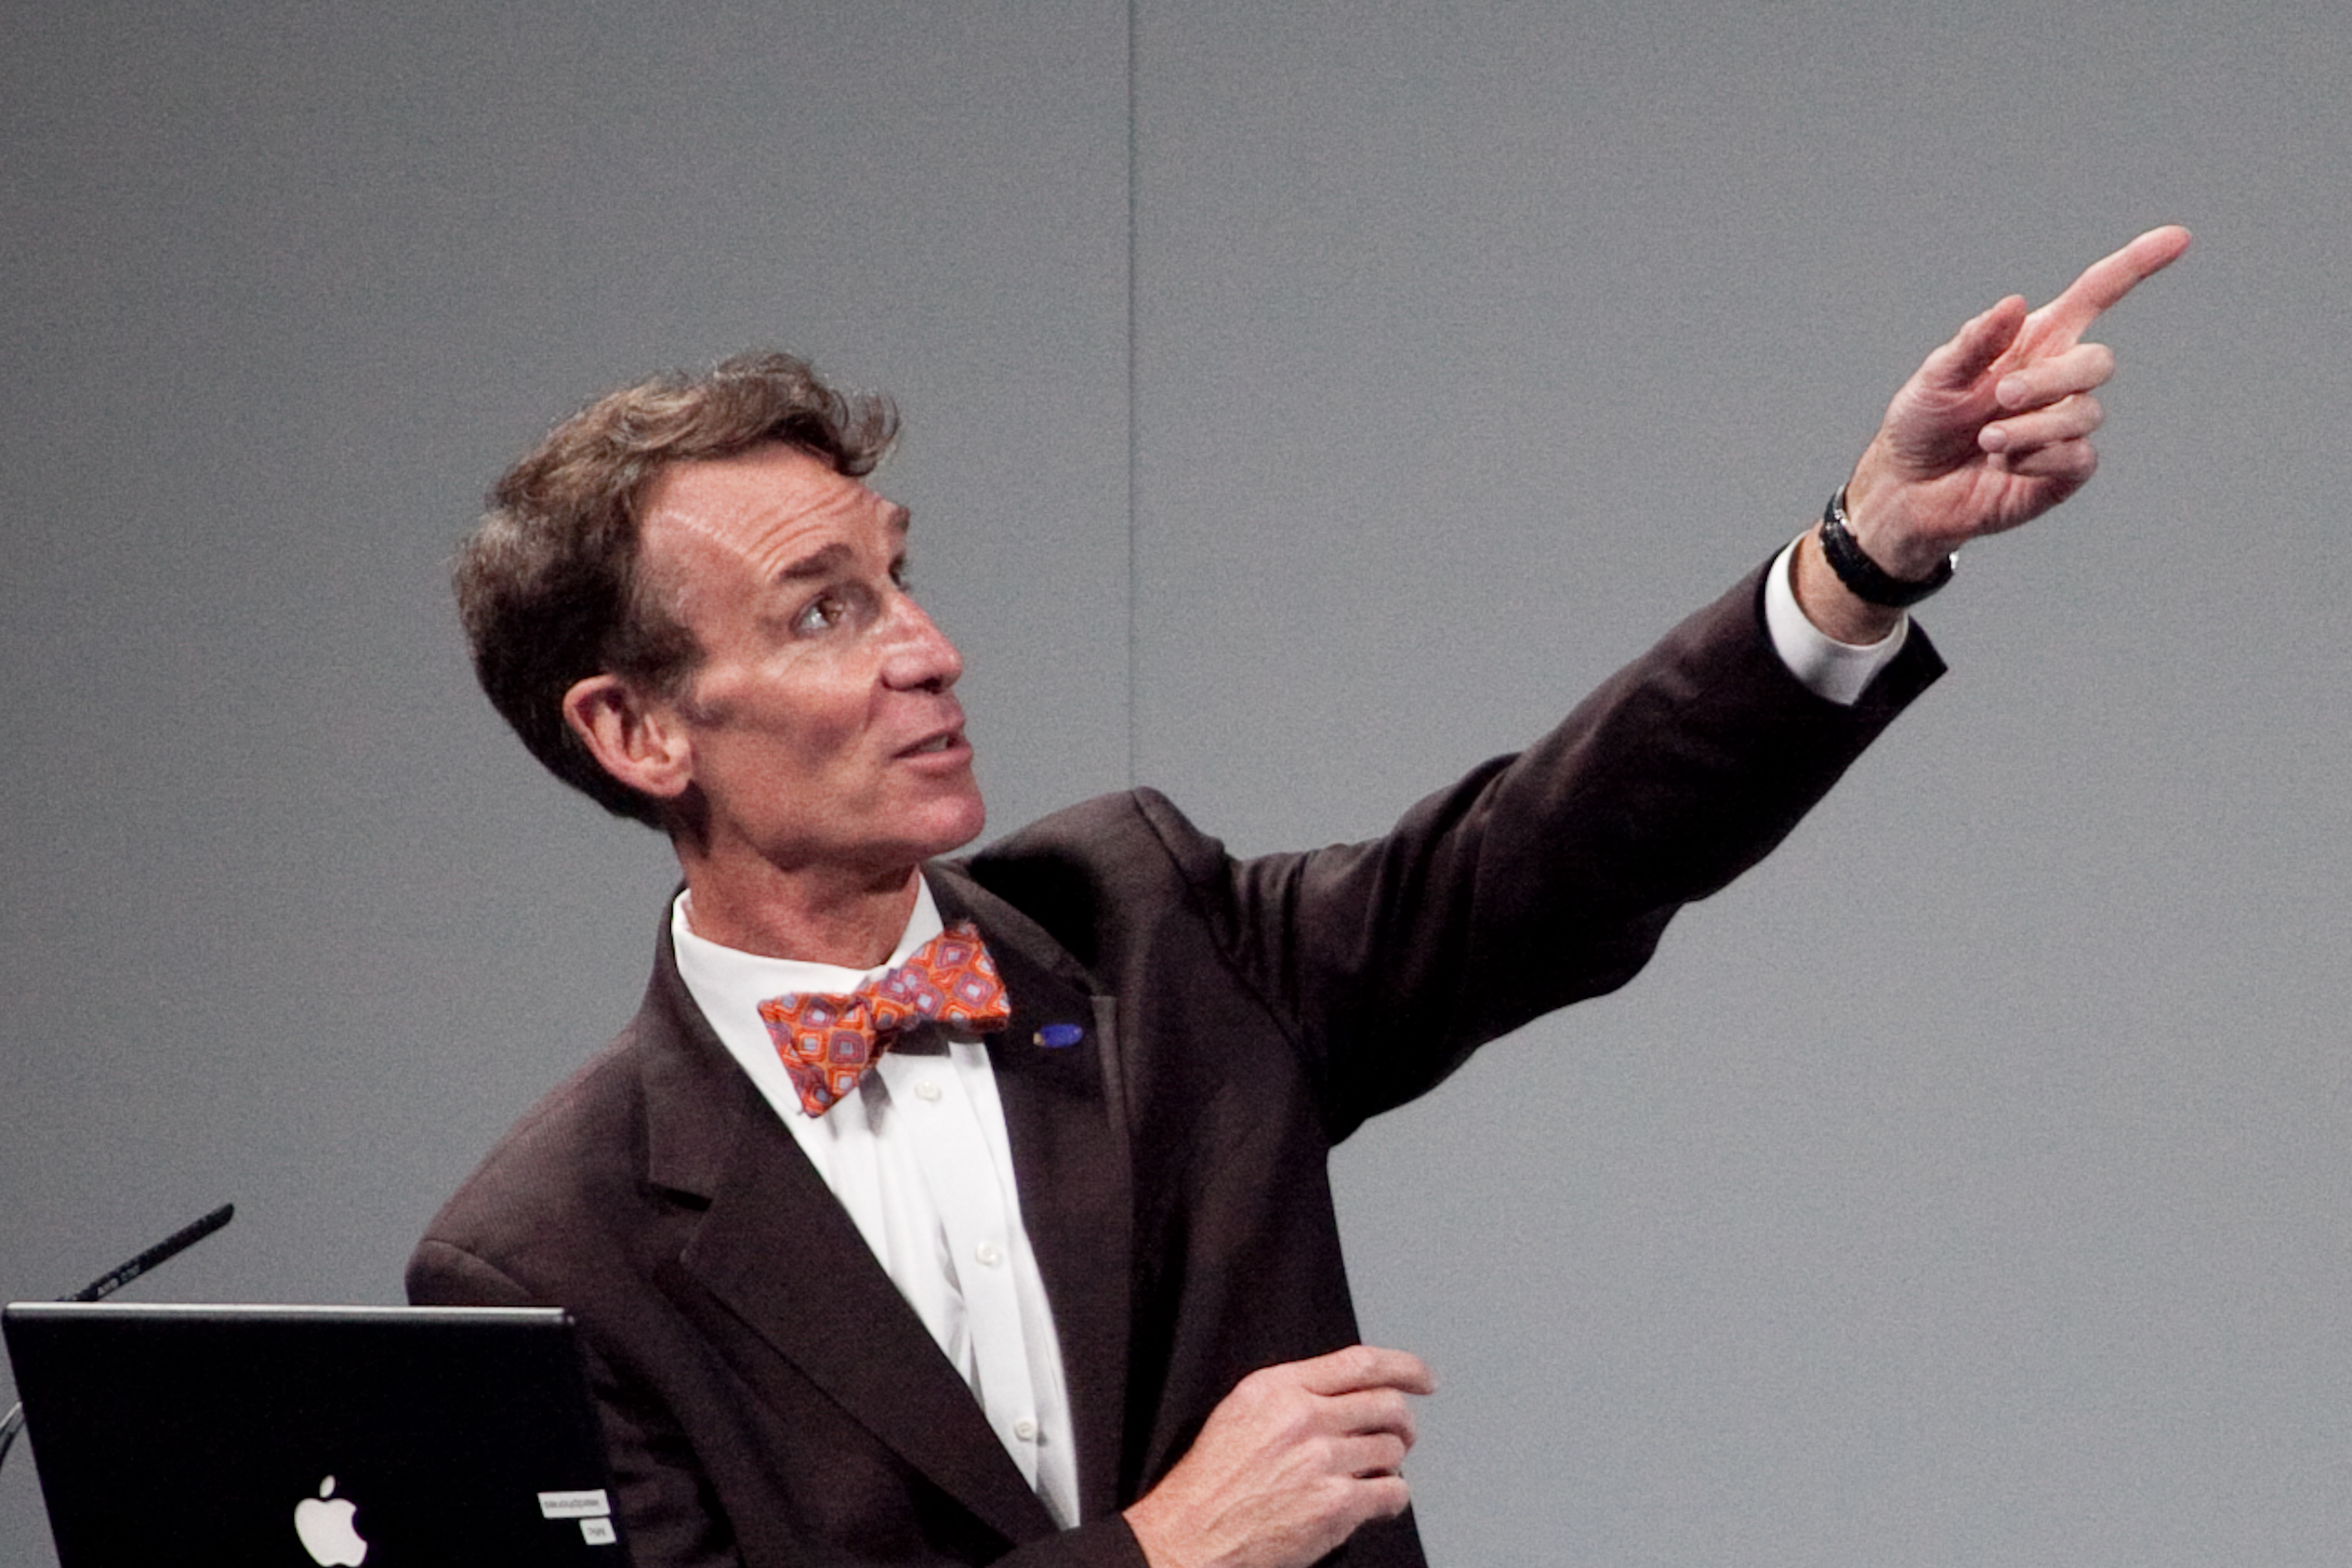 Sarah Palin - Bill Nye the Science Guy